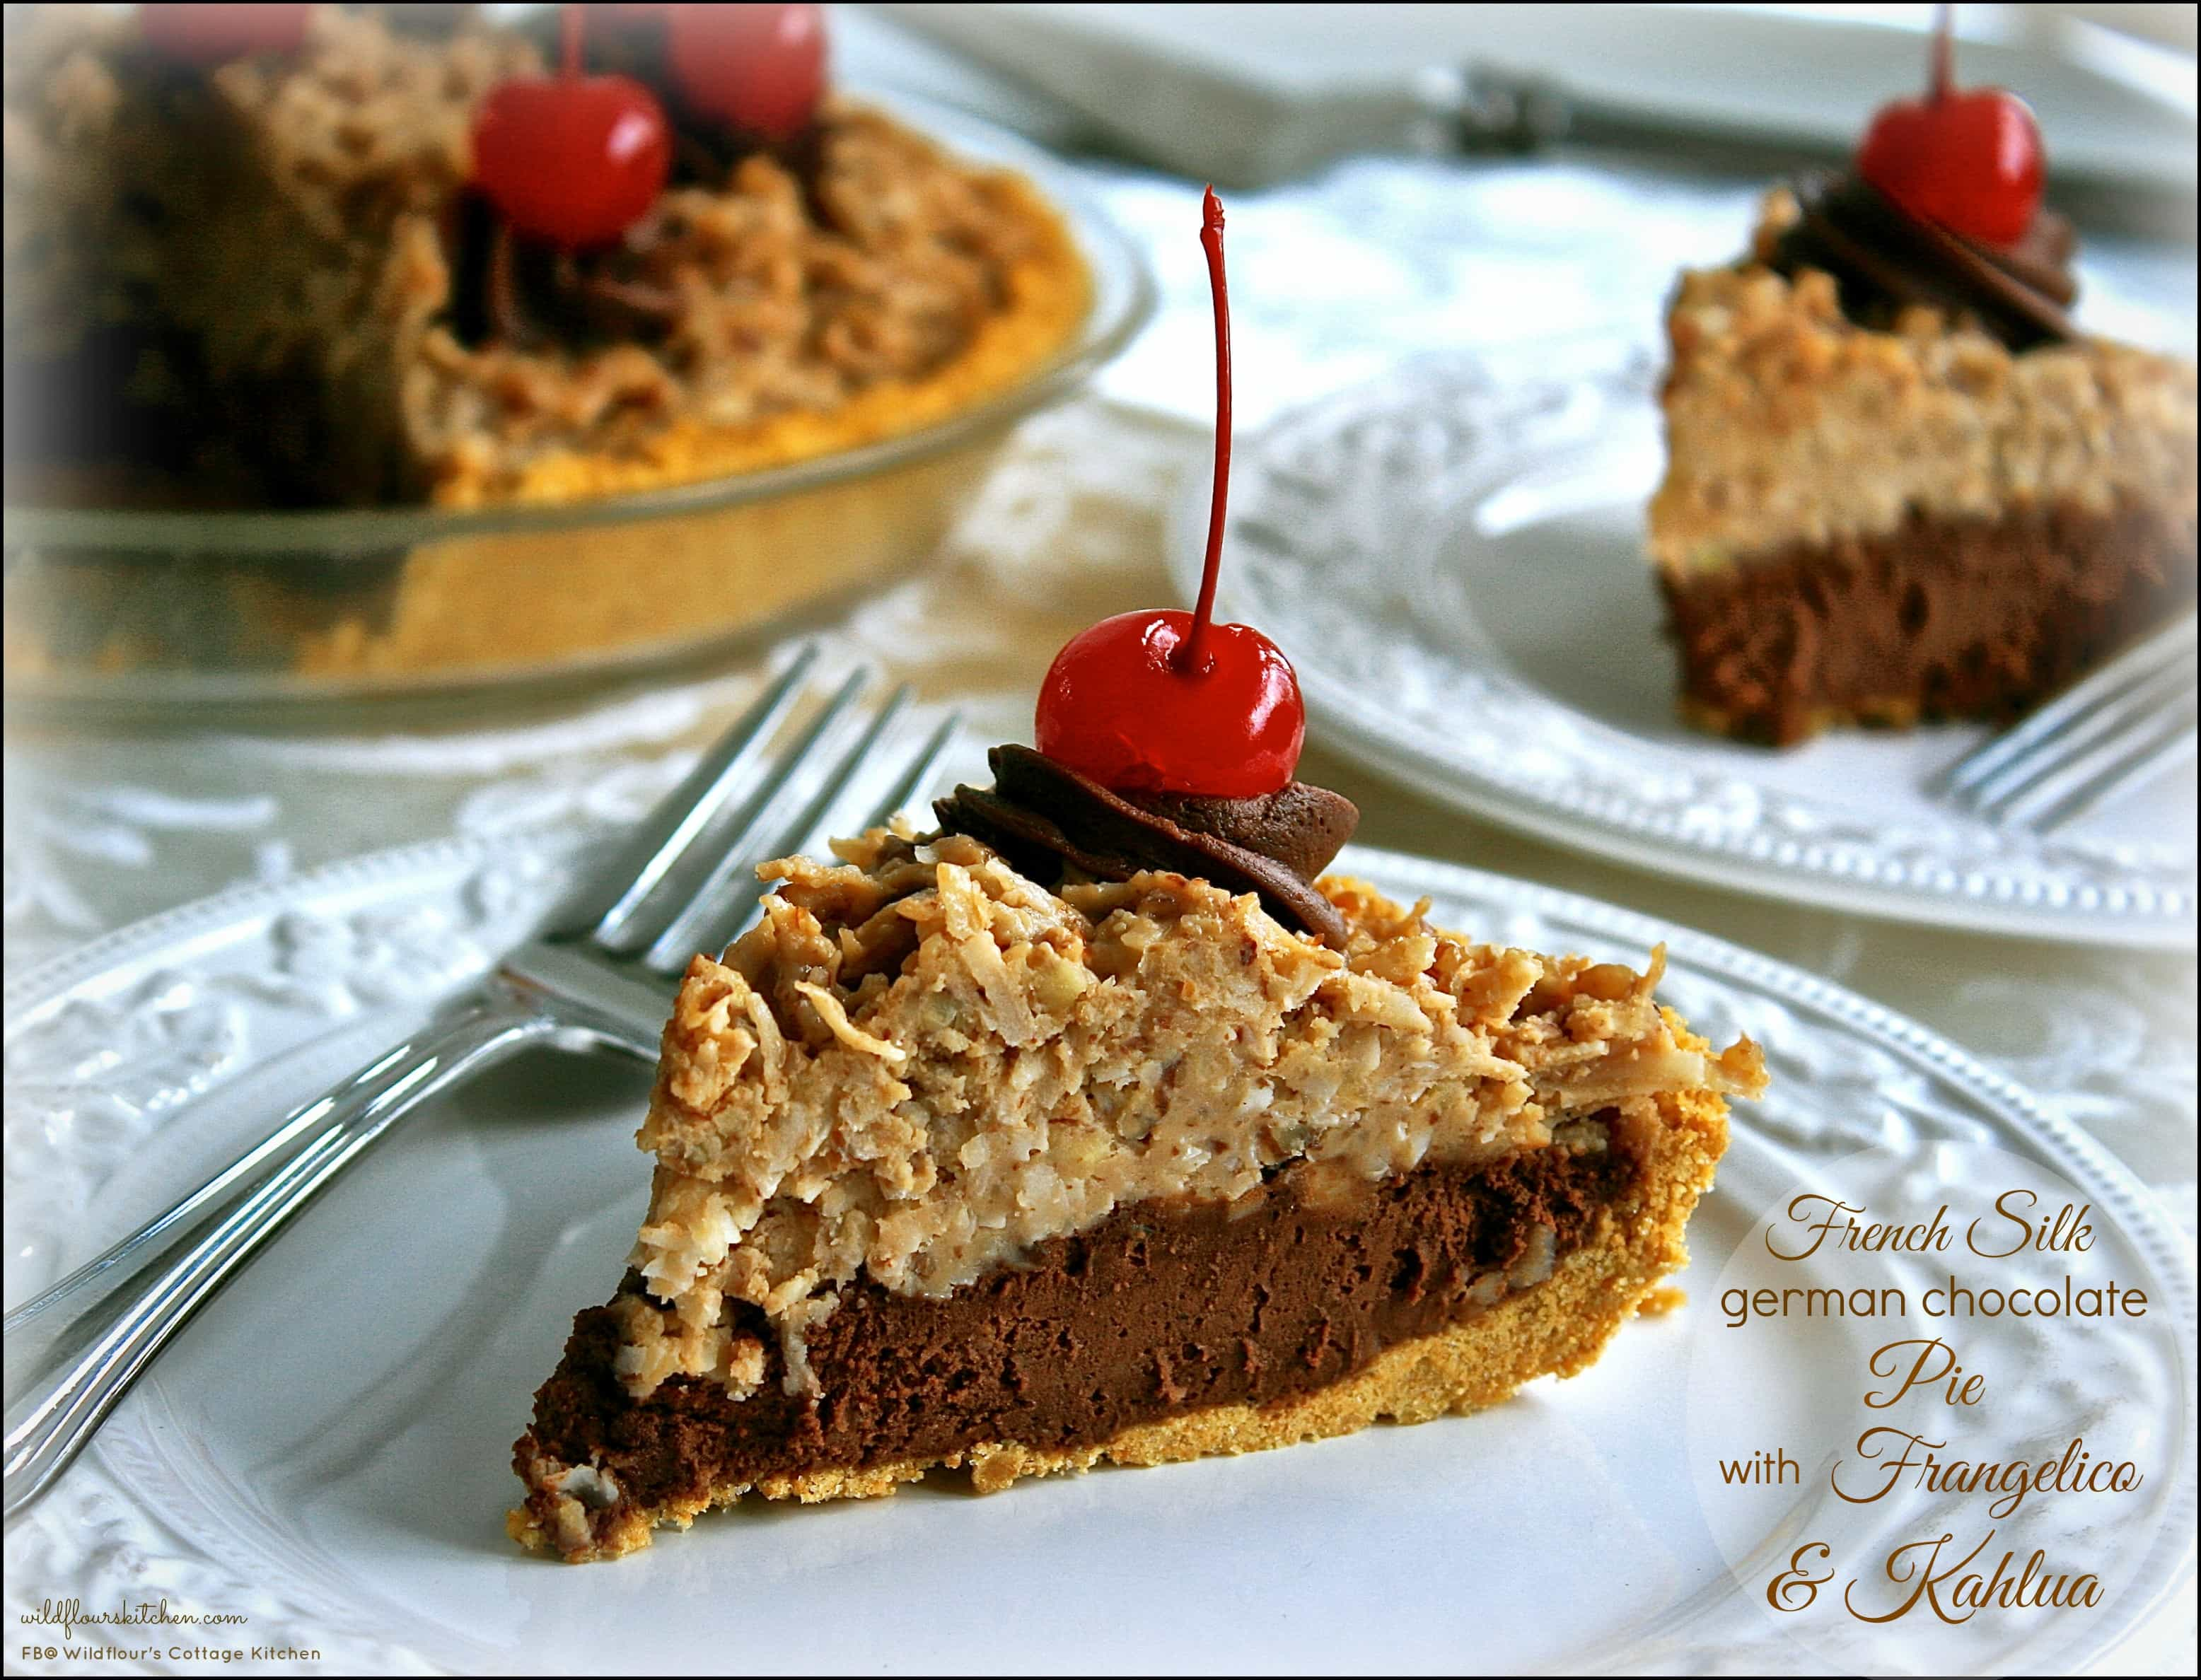 French Silk German Chocolate Pie with Frangelico & Kahlua ...